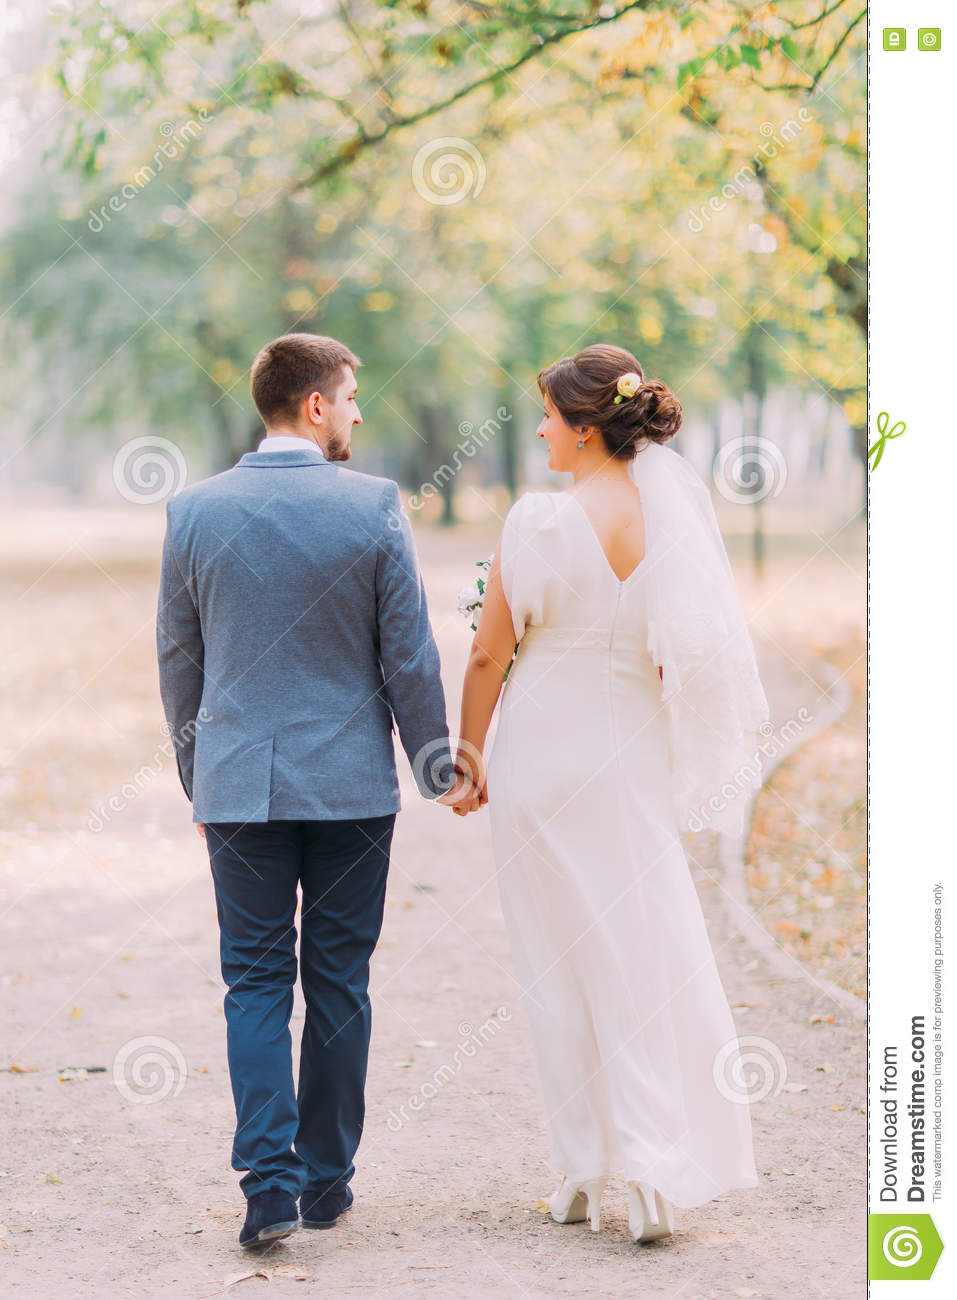 Elegant Bride And Groom Posing Together Outdoors Stock ...